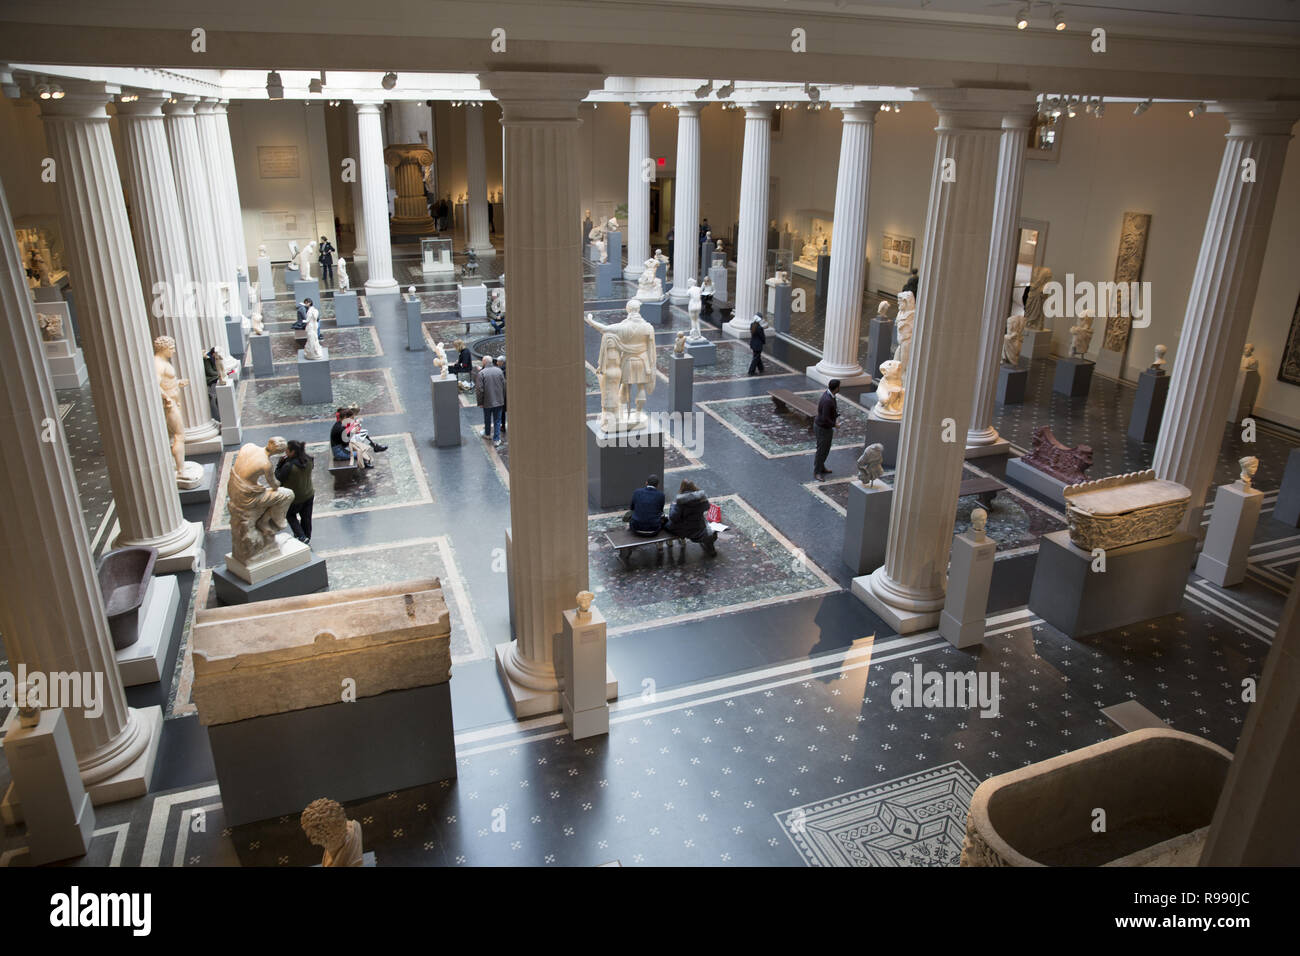 Leon Levy and Shelby White Court Provides Dramatic Centerpiece for Display of the Metropolitan's World-Renowned Classical Art Collection. Greek and Roman Art collection officially opened in 2007. Stock Photo